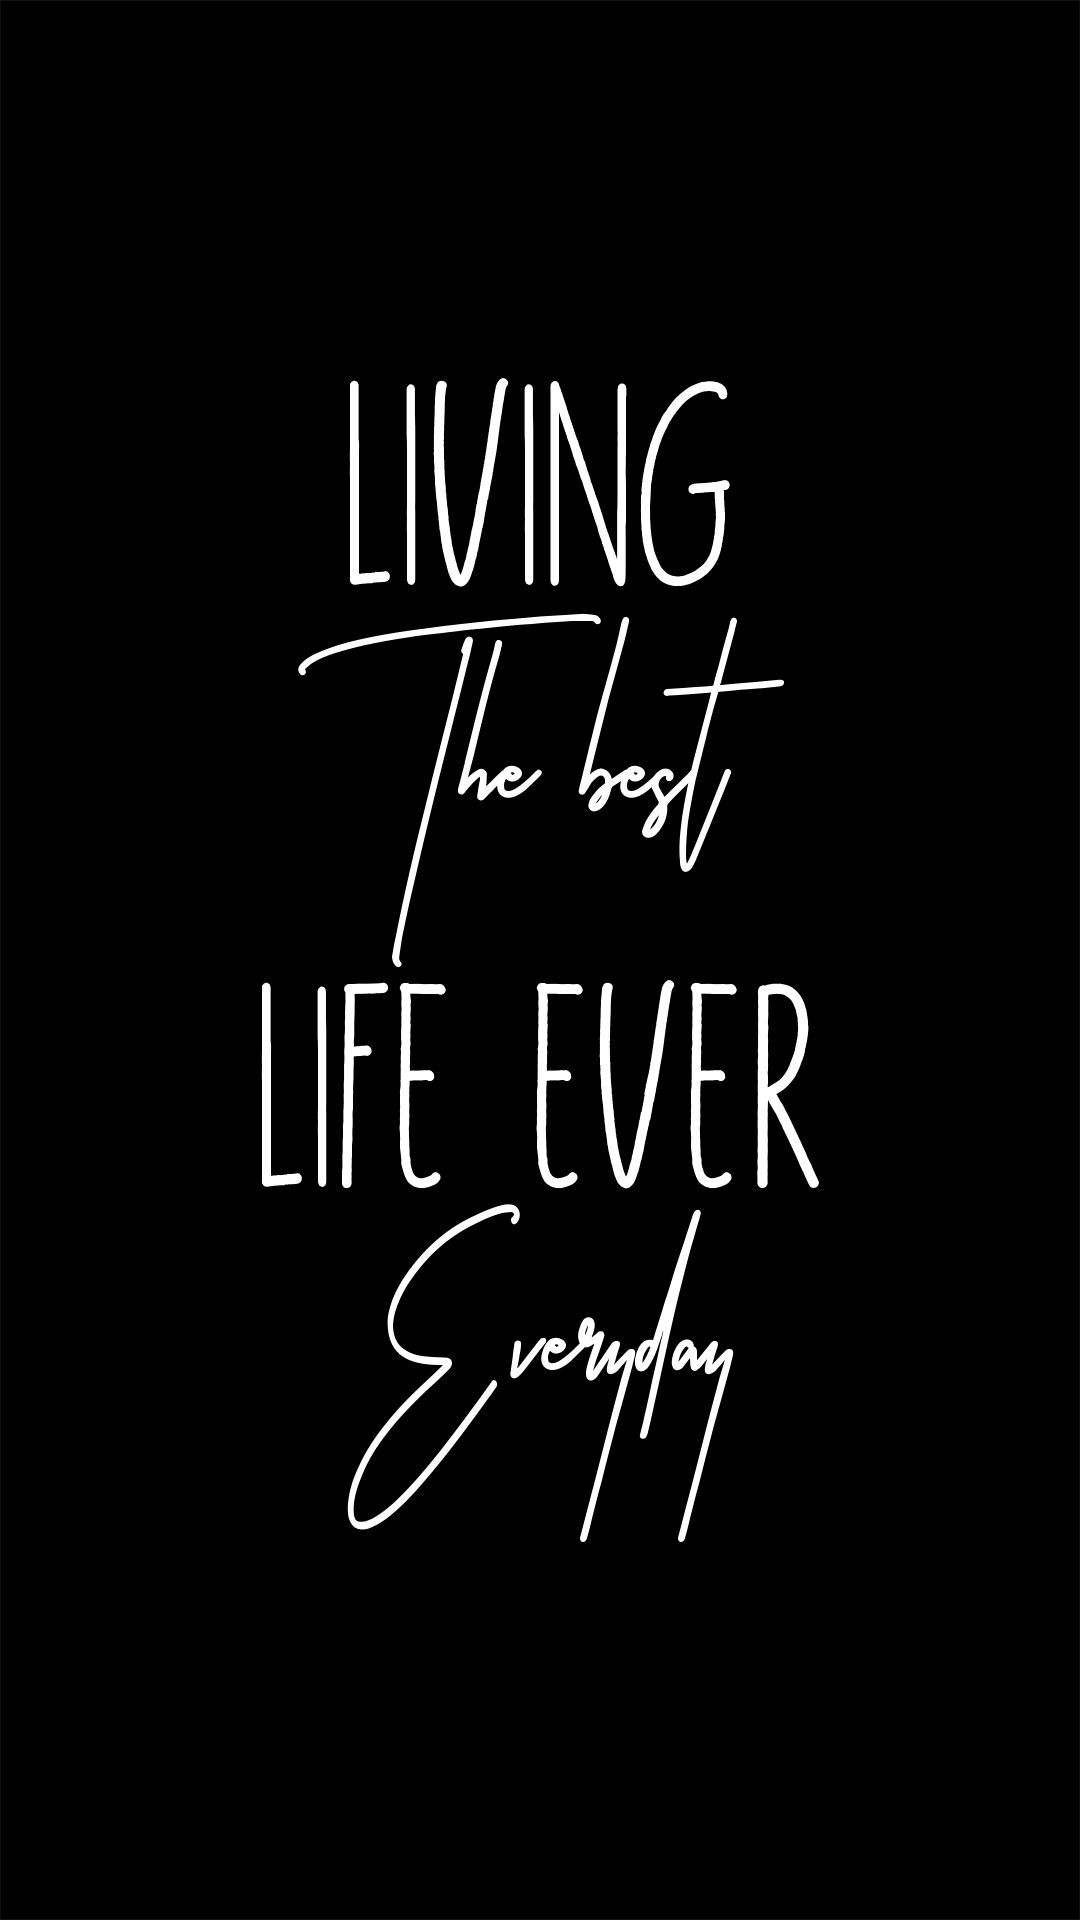 Quotes, Sayings, Inspiration, Motivation, Girl Bosses, Working Moms, Mom Bloggers, Instagram stories lettering graphic design iphone screensavers phone wallpaper positivity optimism #phonewallpaperquotes